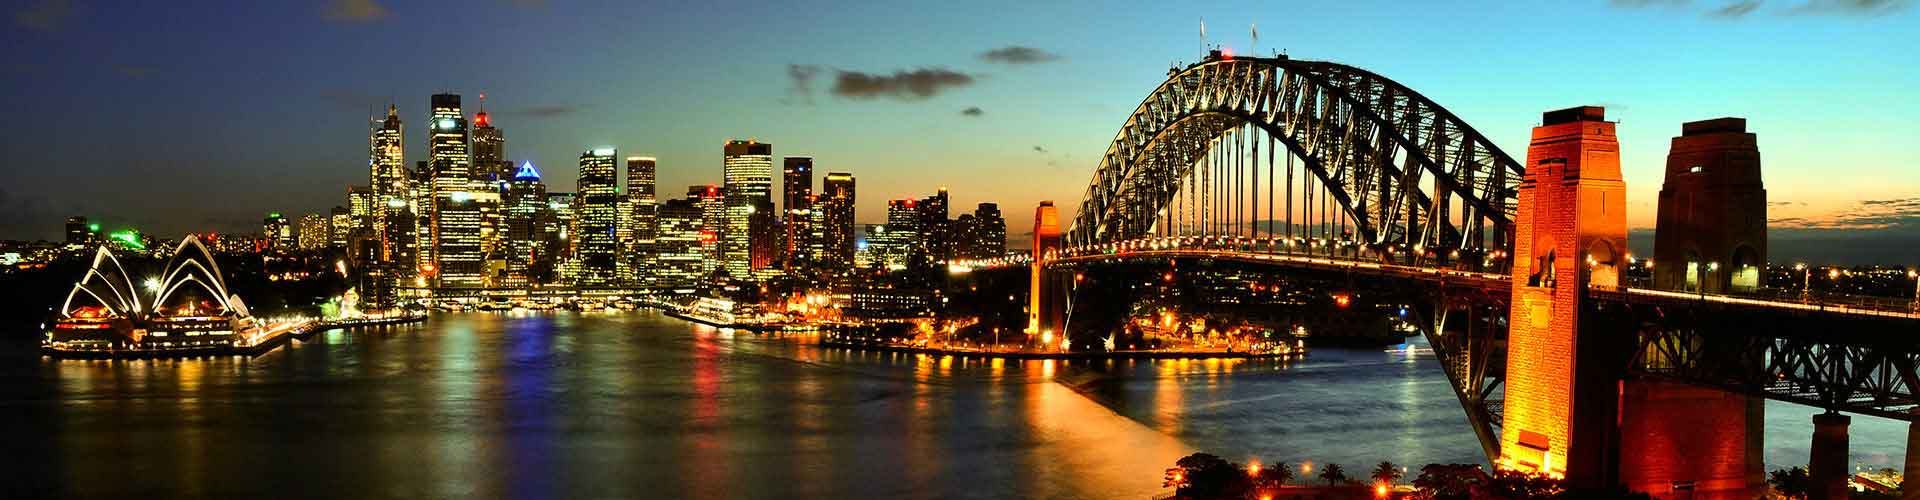 Sydney – Albergues no Darlinghurst bairro. Maps for Sydney, Photos and Reviews for each Hotel in Sydney.